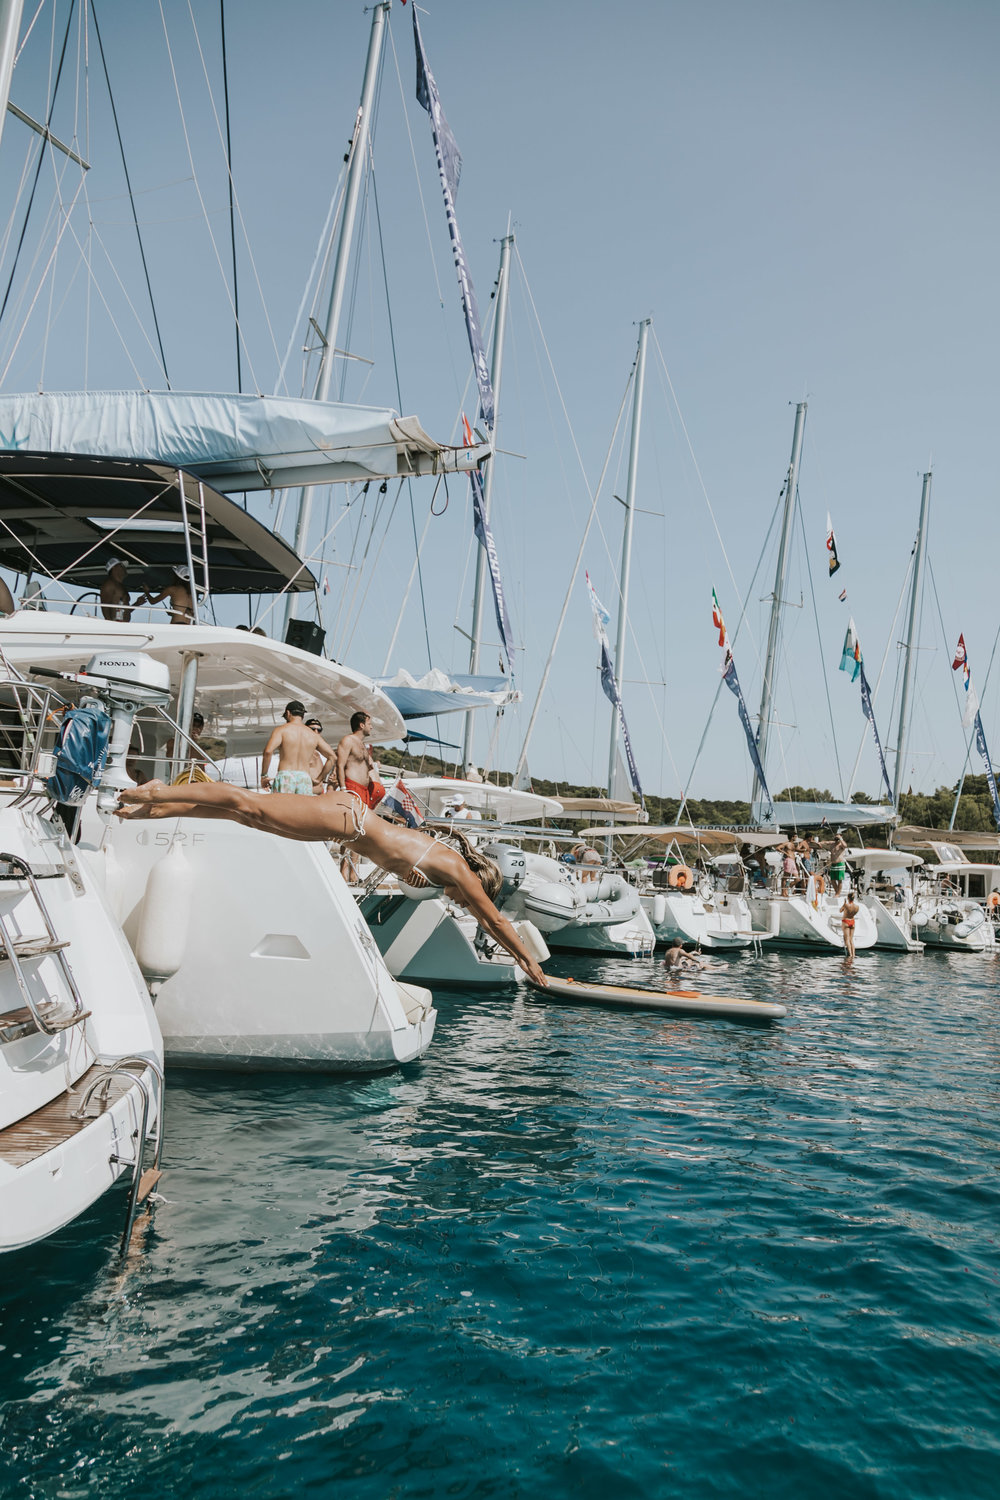 Supercharge-YachtWeek-AUG2018-CreditAllisonKuhlPhotos-7427.jpg